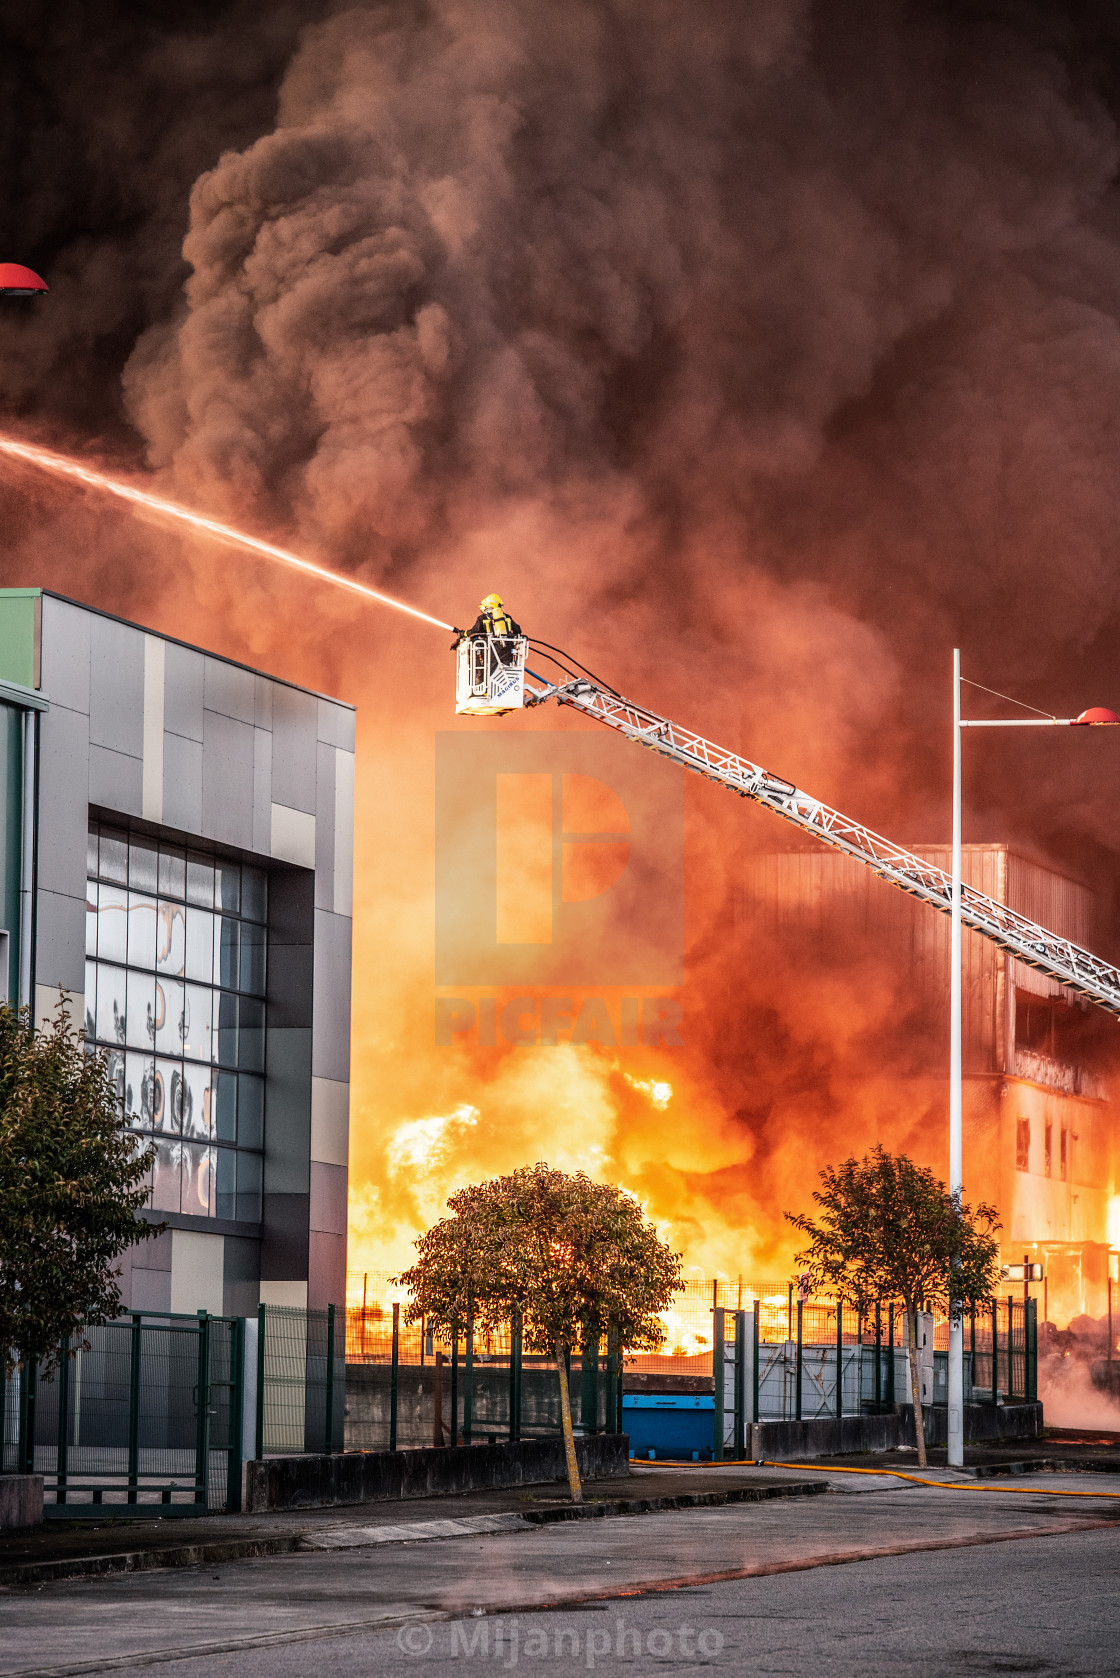 """""""firefighters against a fire in an industrial unit facility"""" stock image"""